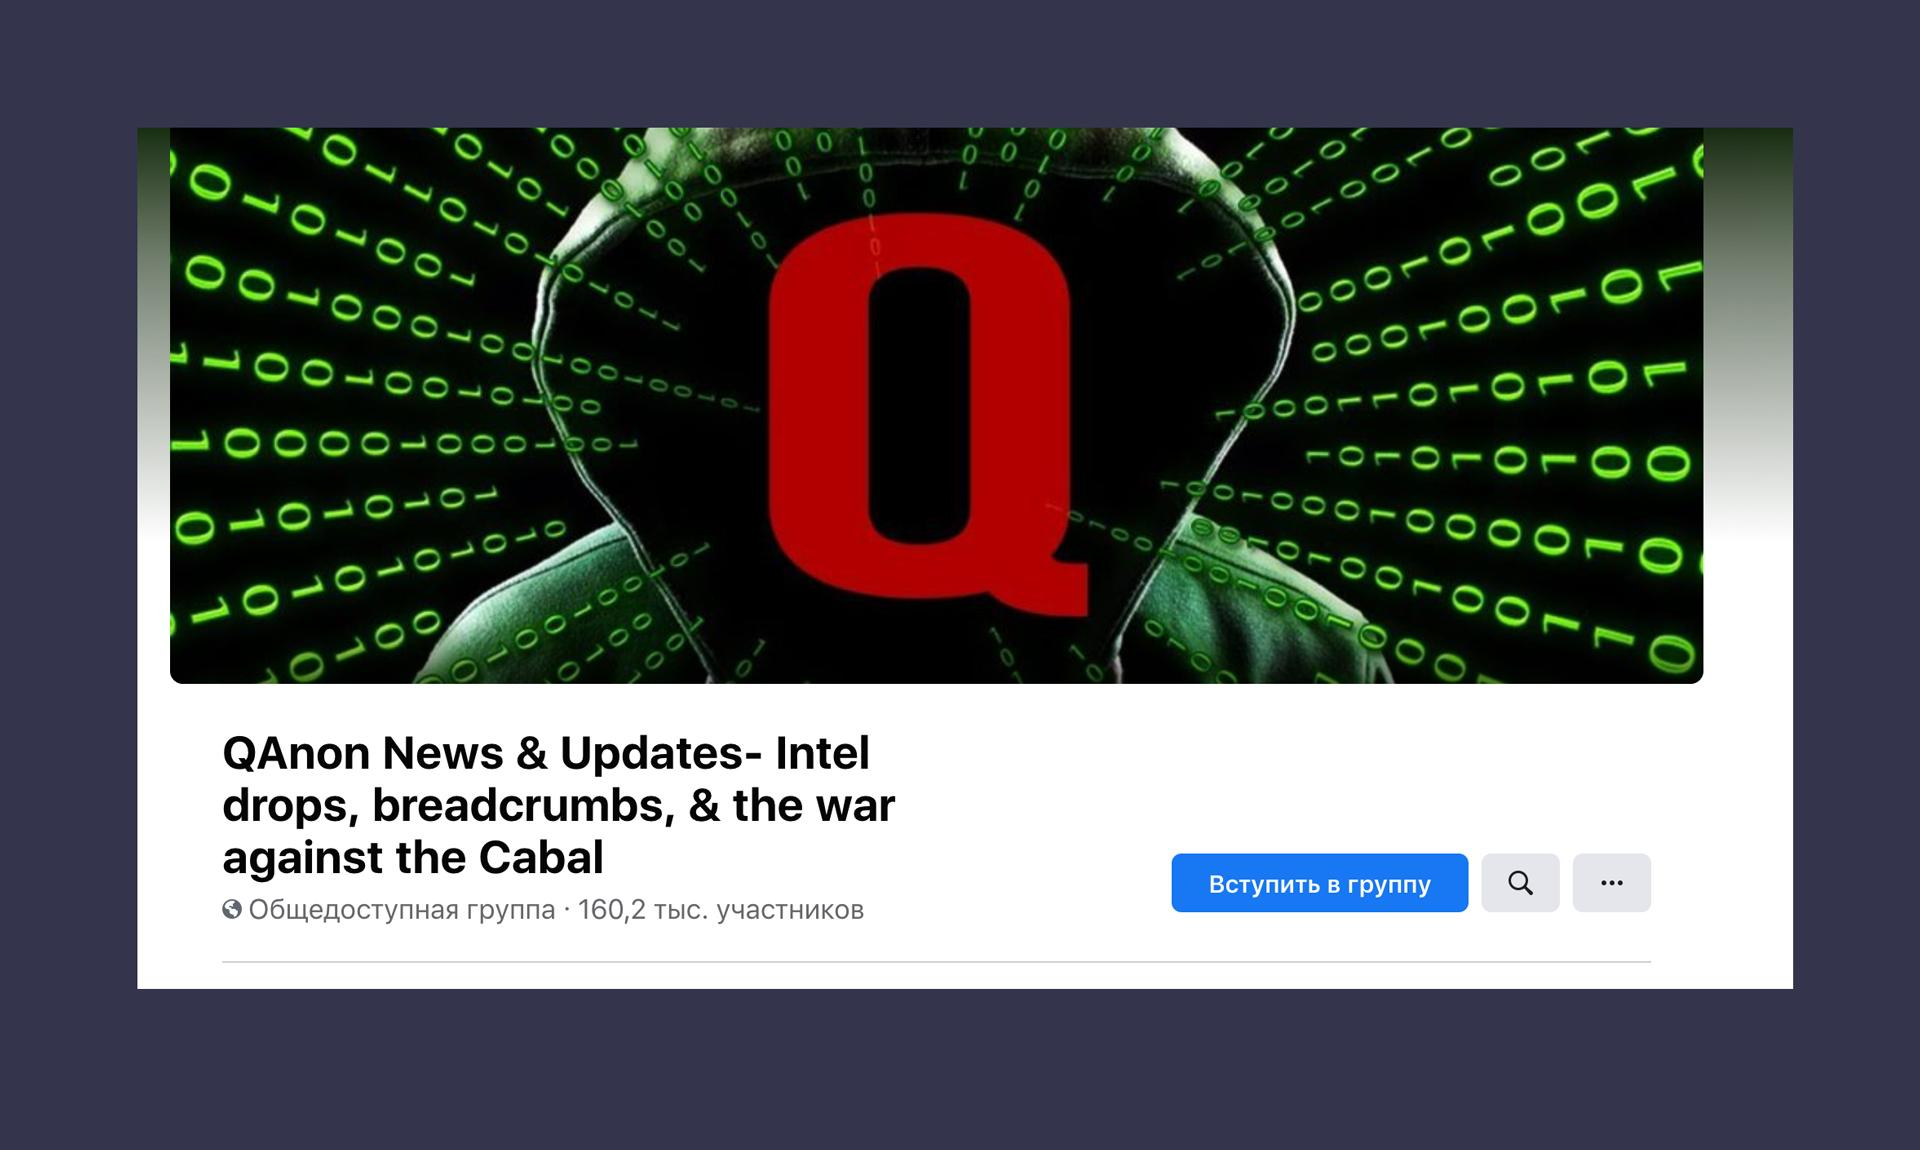 Фото © Facebook / QAnon News & Updates- Intel drops, breadcrumbs, & the war against the Cabal